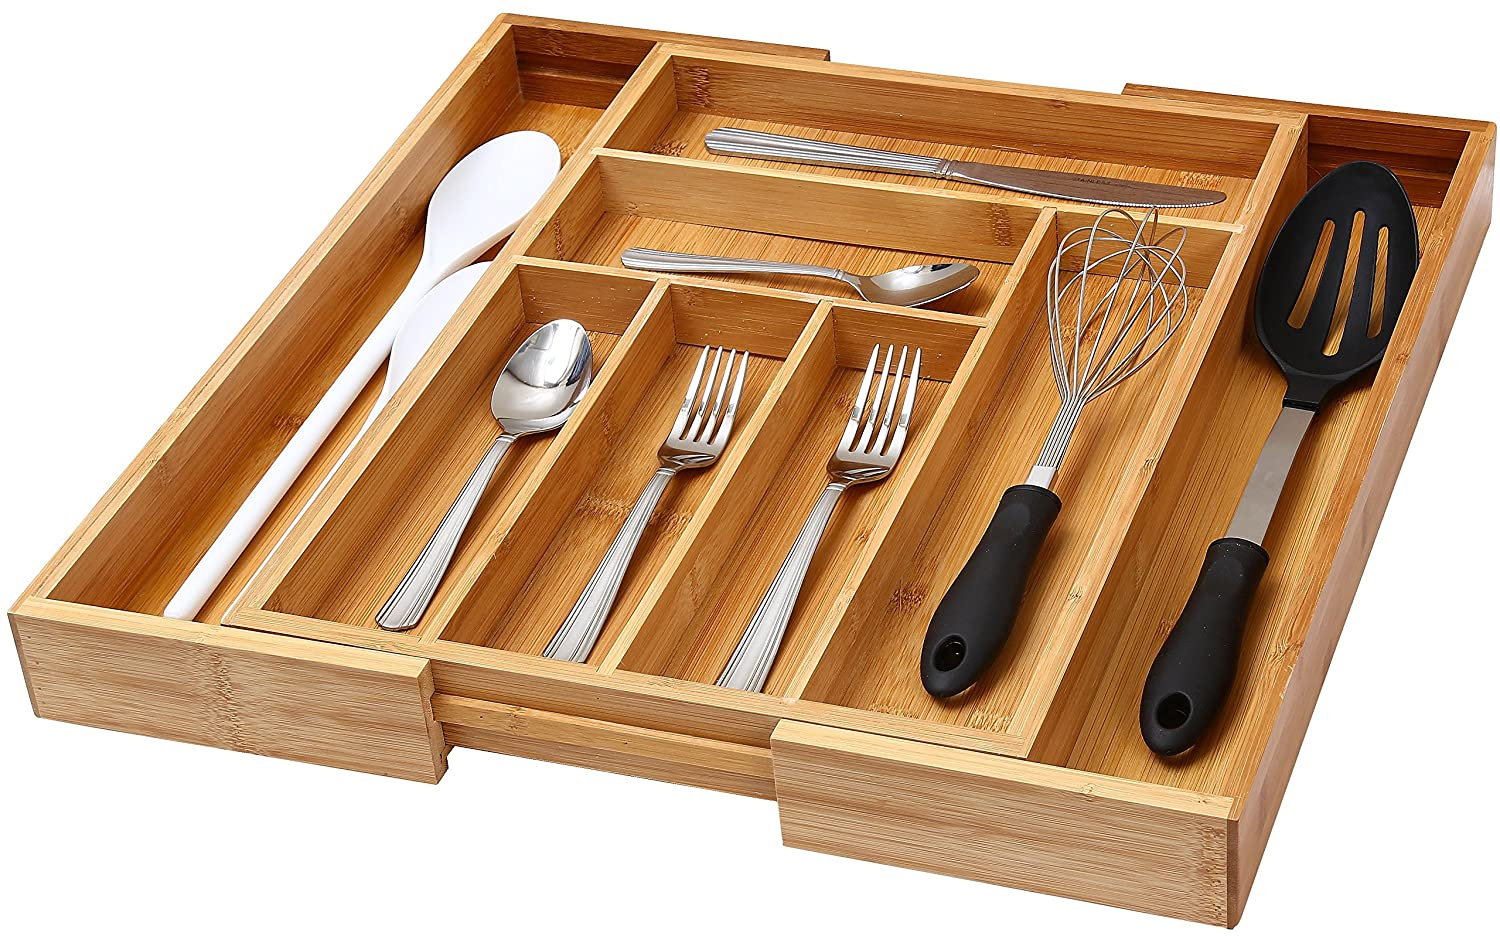 flatware the trays s organizers home kit starter silverware bl feb kitchen drawer model organizer utensil bamboo holders utensils